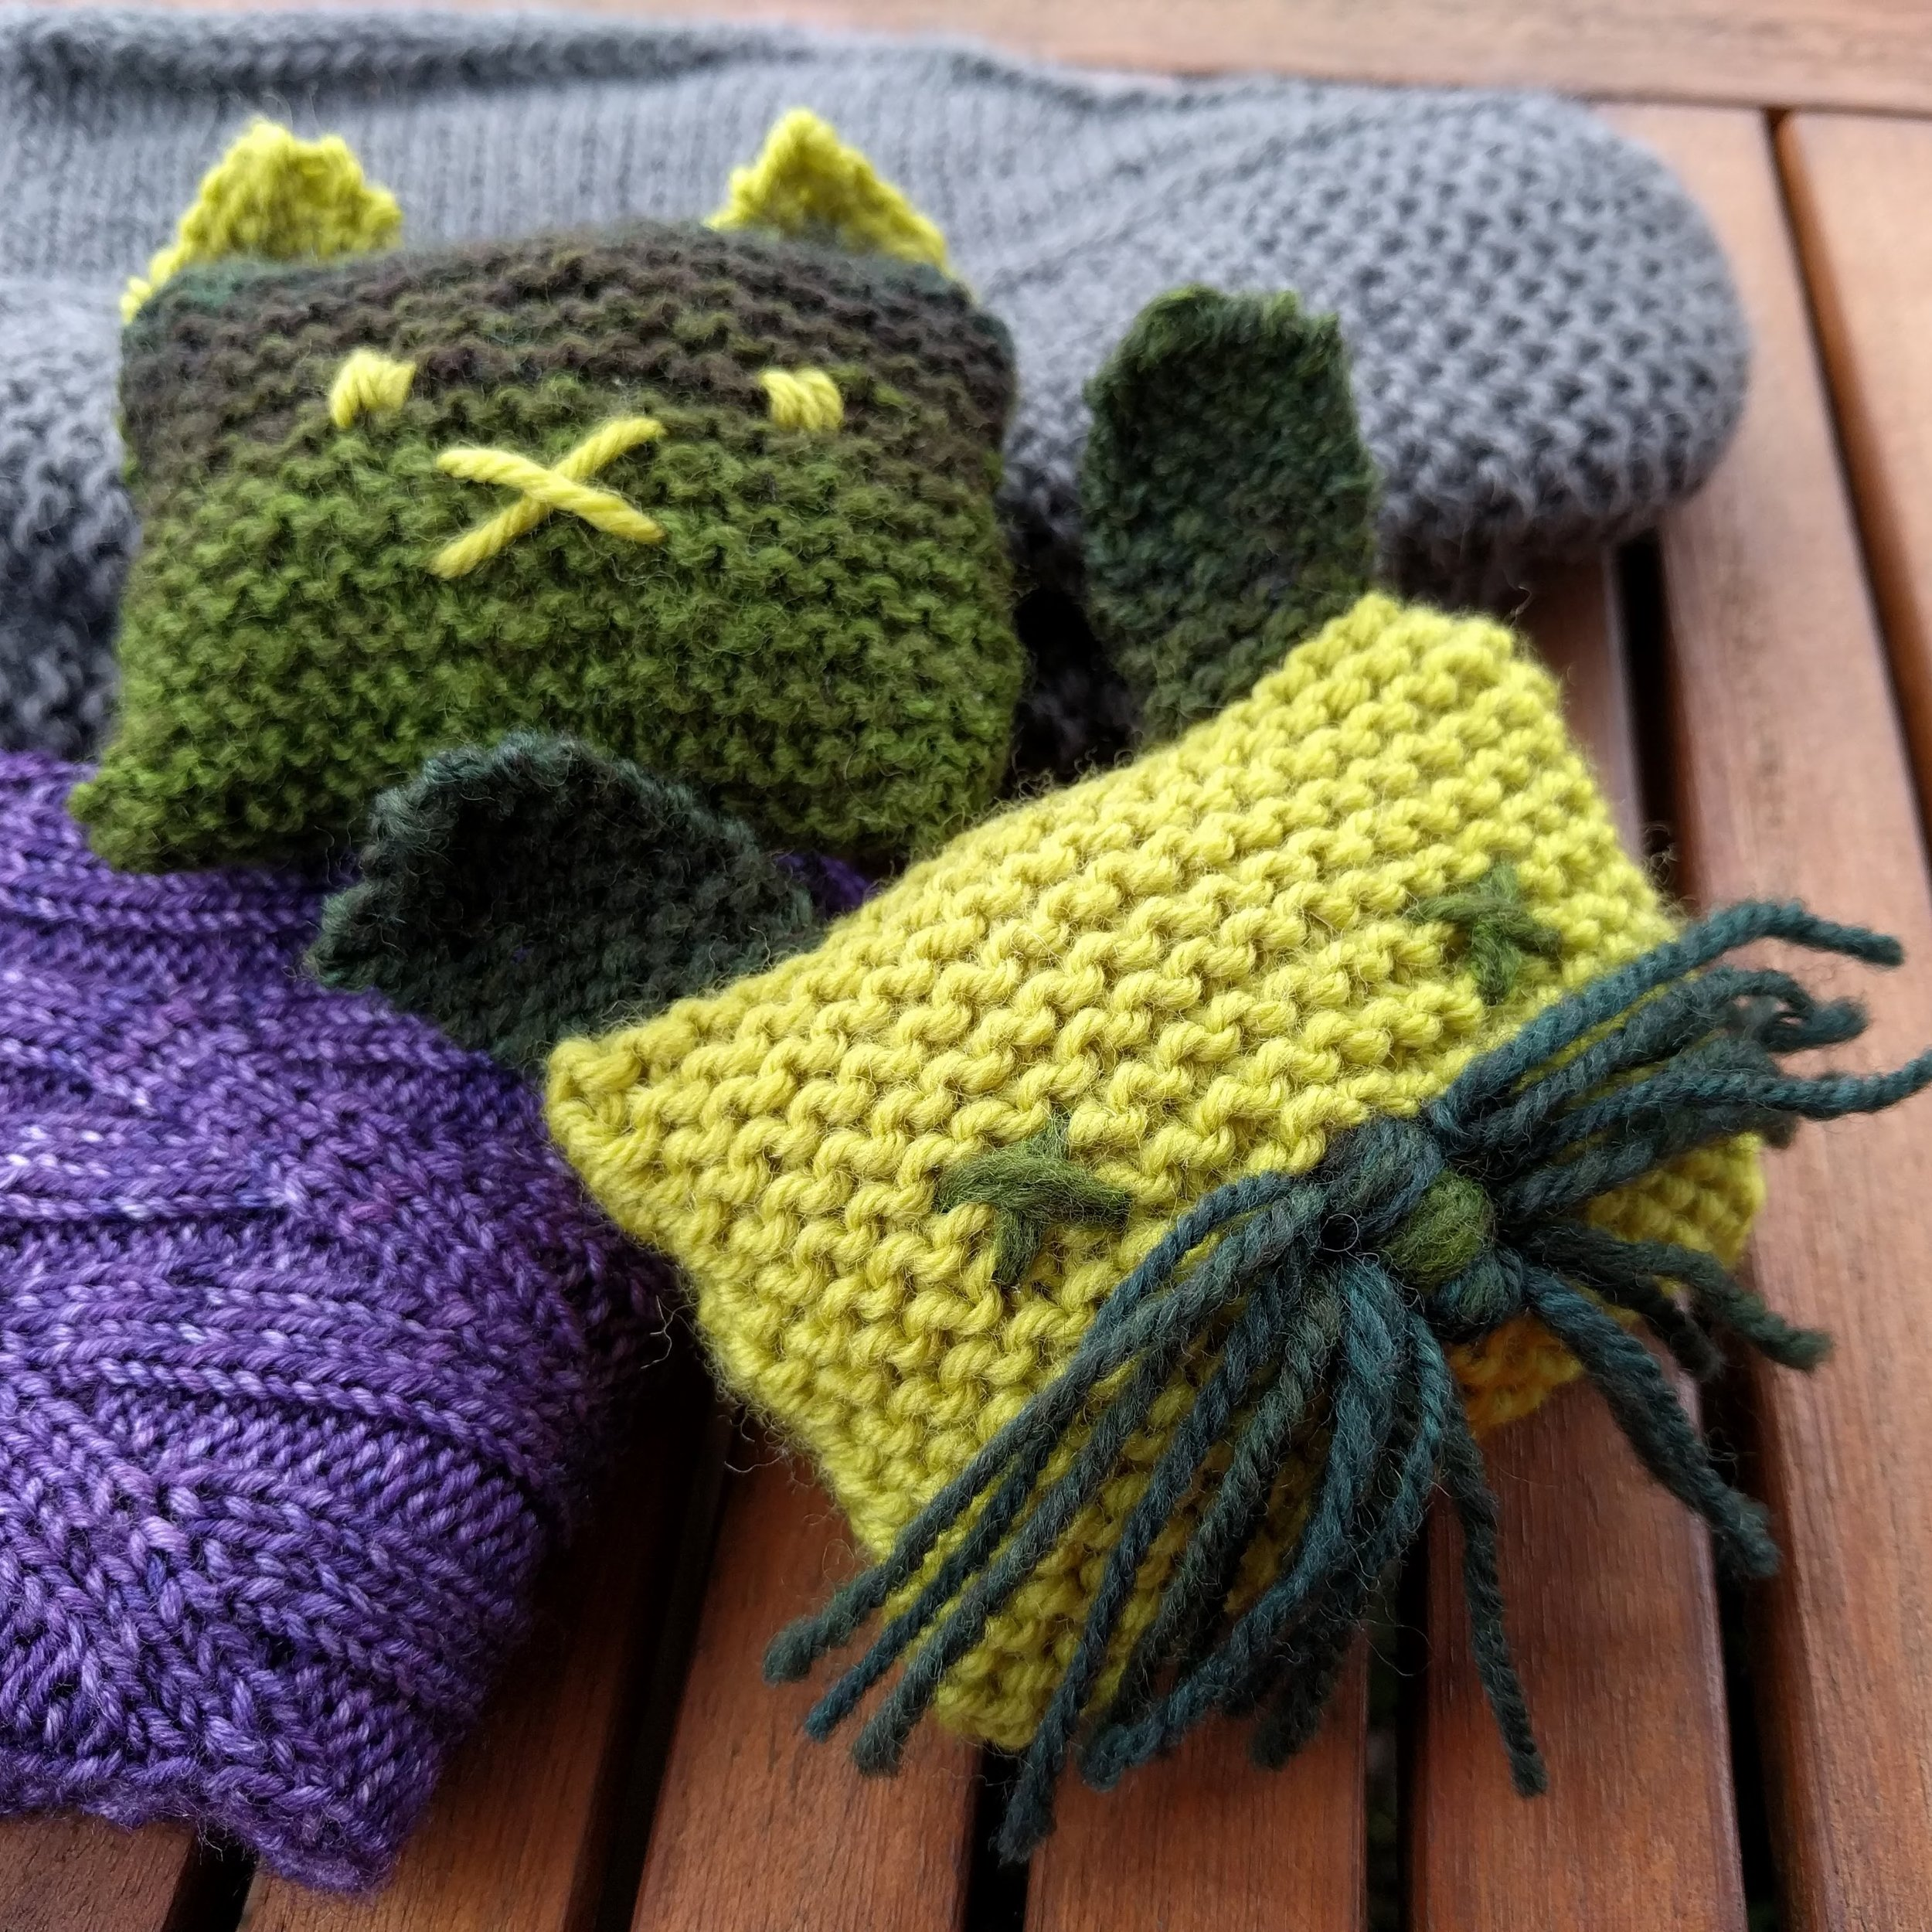 The Bruces are being propped up by two other recent gift knits – a simple pair of slippers, a more impressive looking pair of socks. I love complicated knits but honestly none of these projects gave me more pleasure than any other.